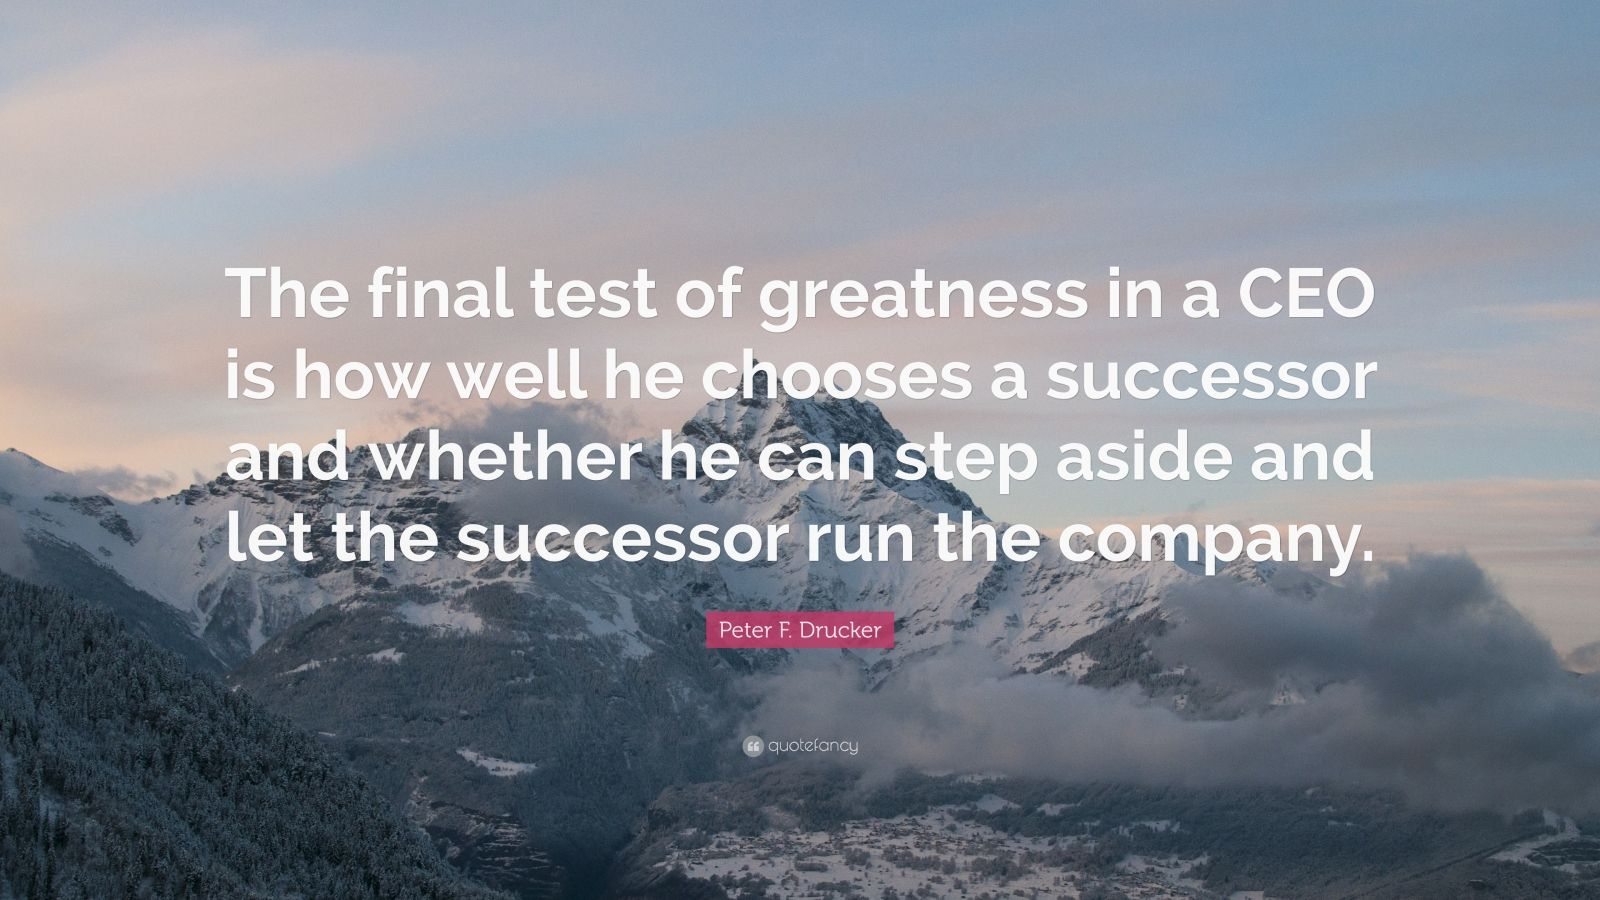 """Peter F. Drucker Quote: """"The final test of greatness in a CEO is how well he chooses a successor and whether he can step aside and let the successor run the company."""""""